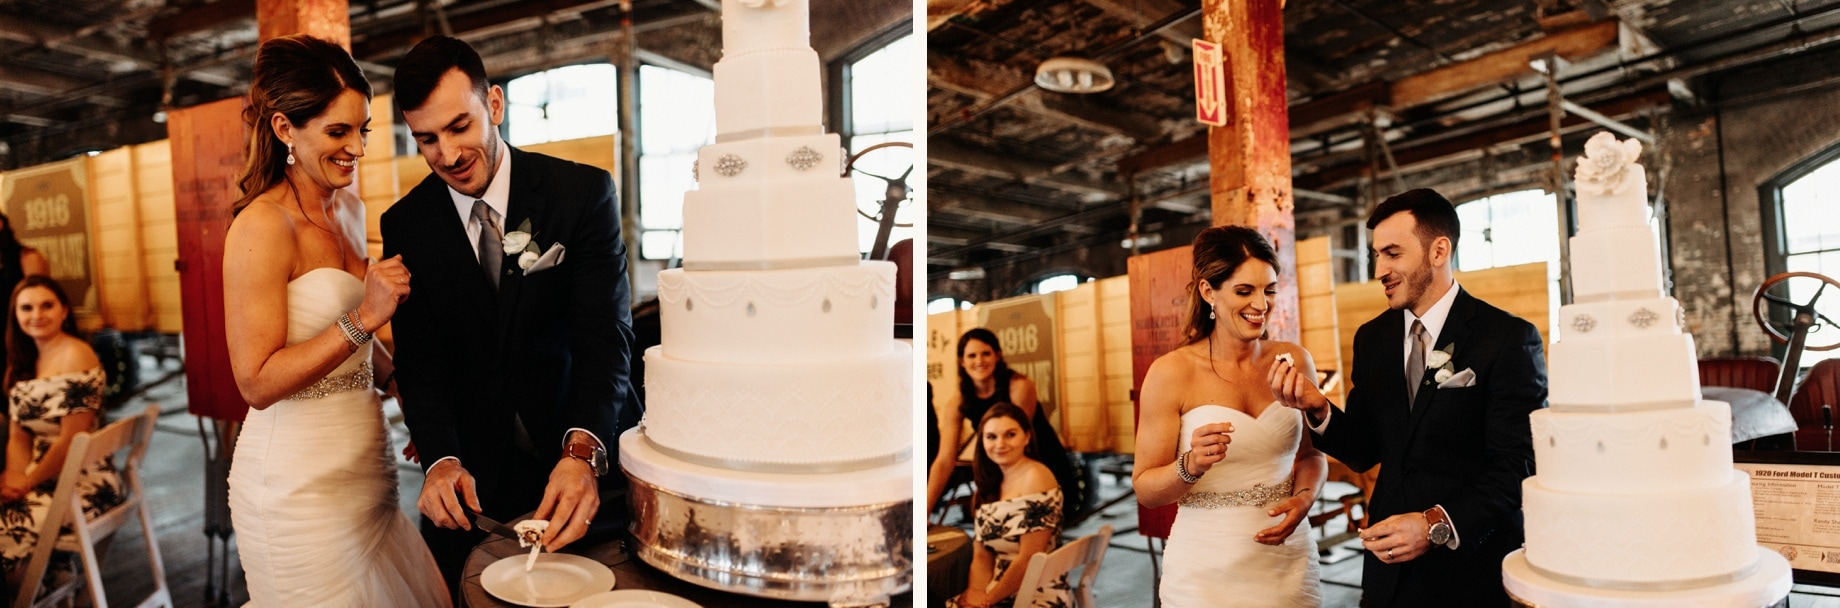 cake cutting at a ford piquette plant wedding